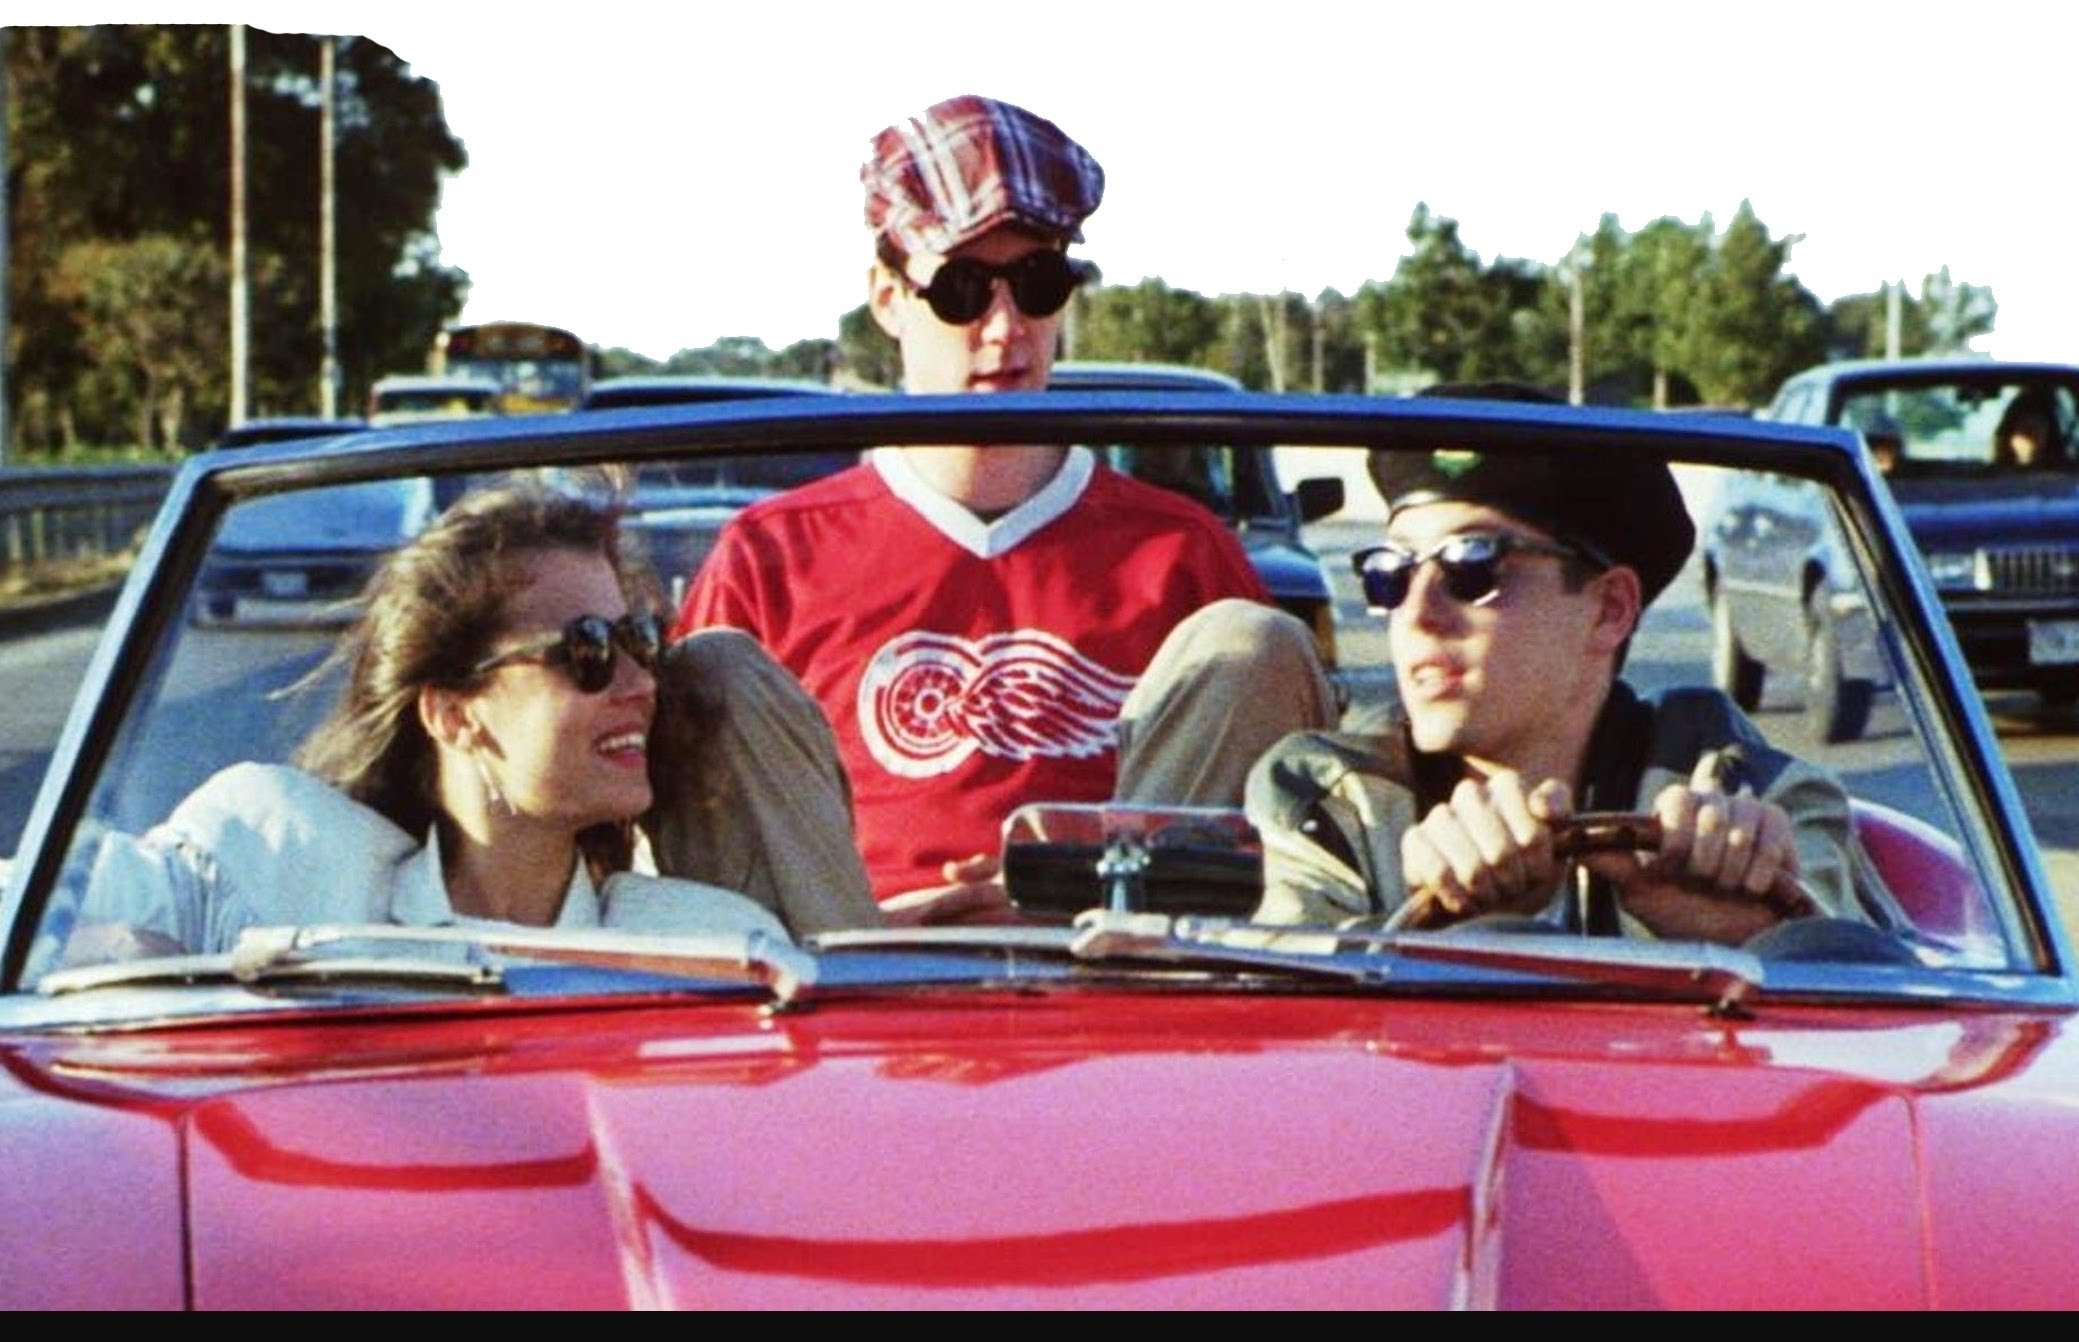 Ferris Buellers Day Off Computer Wallpaper 70371 2079x1342px 2079x1342